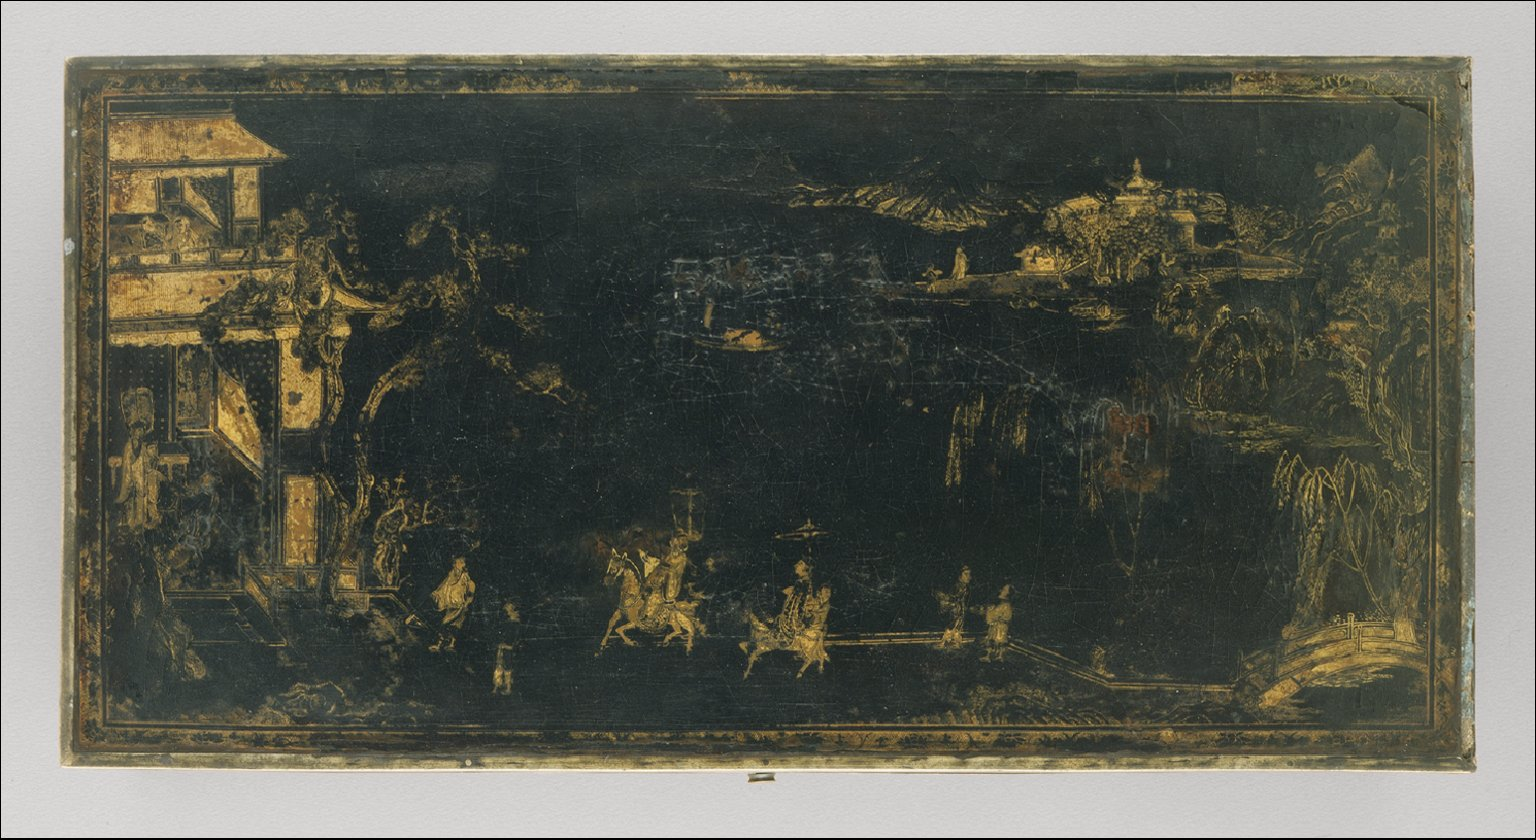 Rectangular Box (Changfang He) with Figures in a Landscape